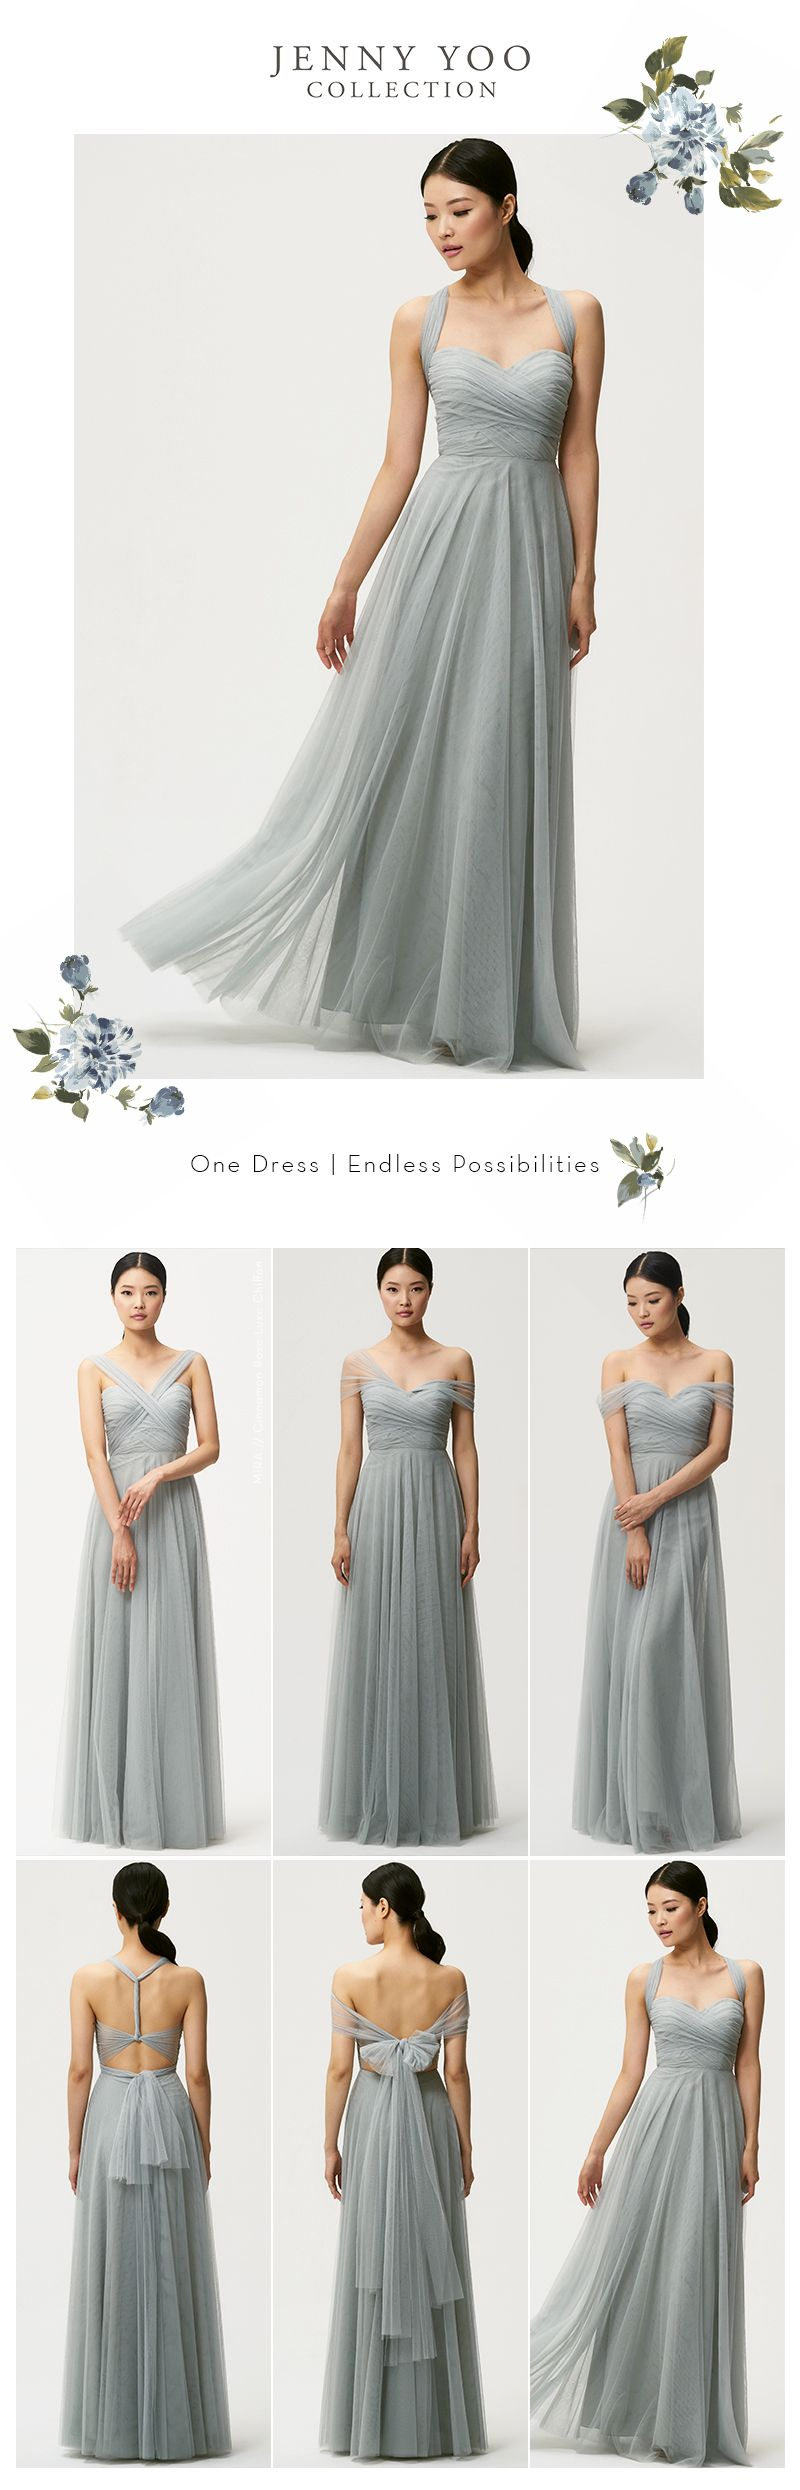 98f6a553c7 Jenny Yoo Bridesmaids, the convertible soft tulle Julia dress features back  tie panels and detachable straps that can be used to create different  necklines.